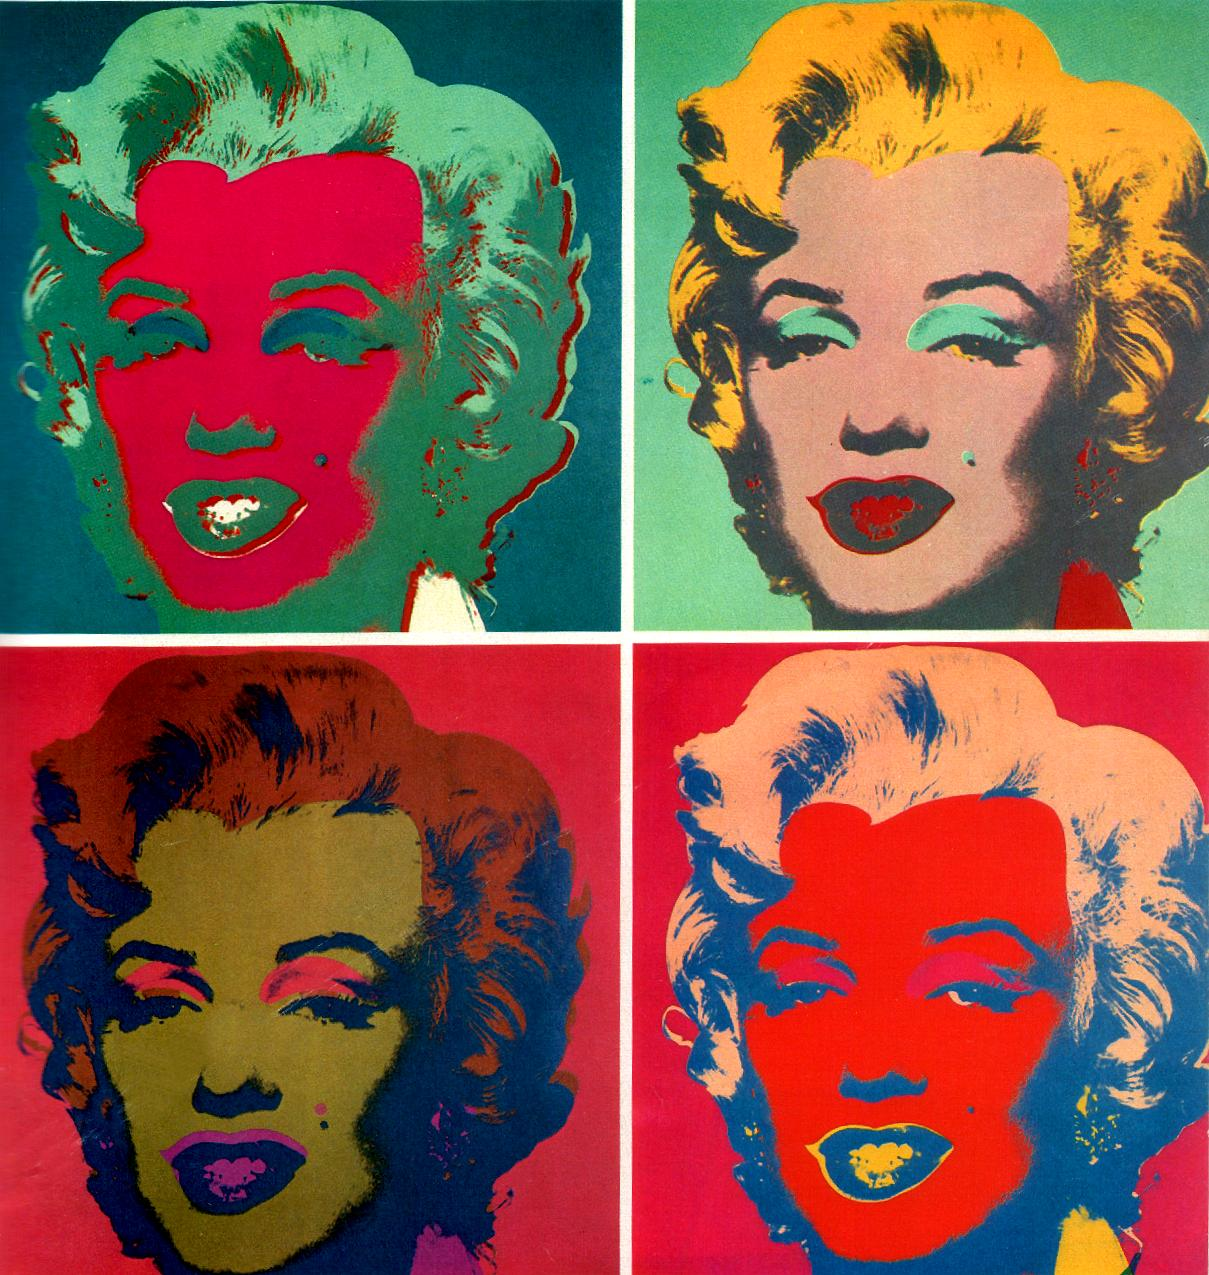 marilyn diptych essay The essay compares andy warhol's marilyn diptych with yasumasa morimura's self-portrait warhol's marilyn diptych is an acrylic on canvas painted in 1962.